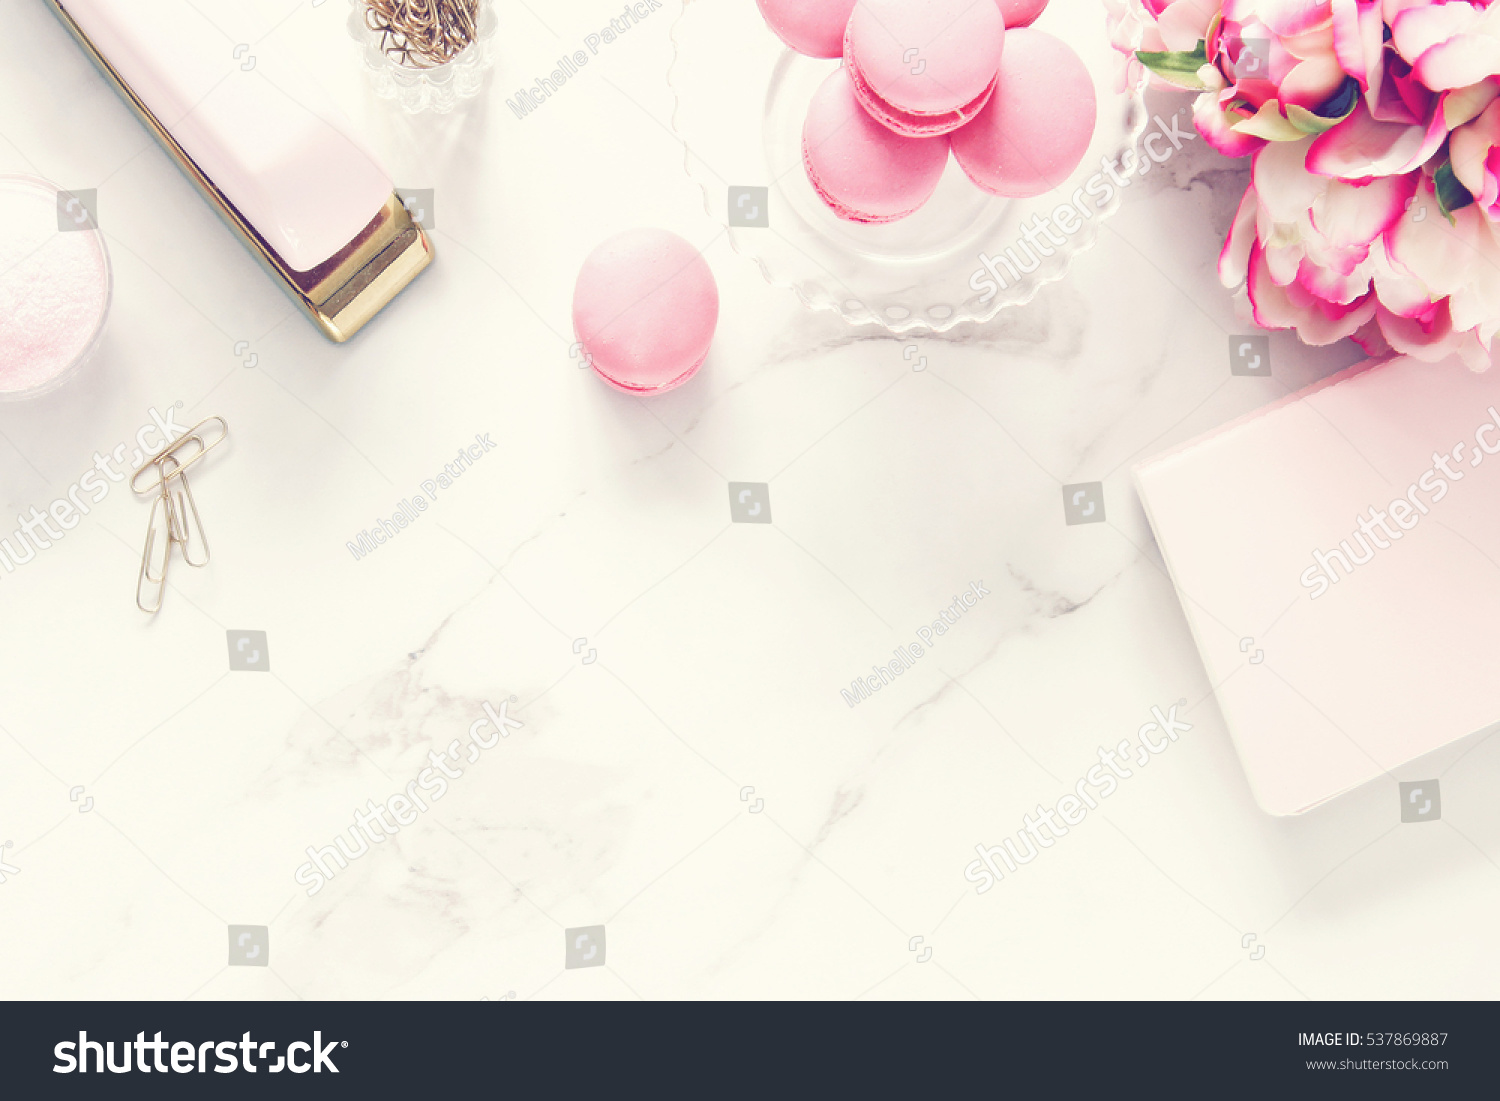 Beau Chic Pink And White Desktop With Elegant Office Supplies With Room For Copy.